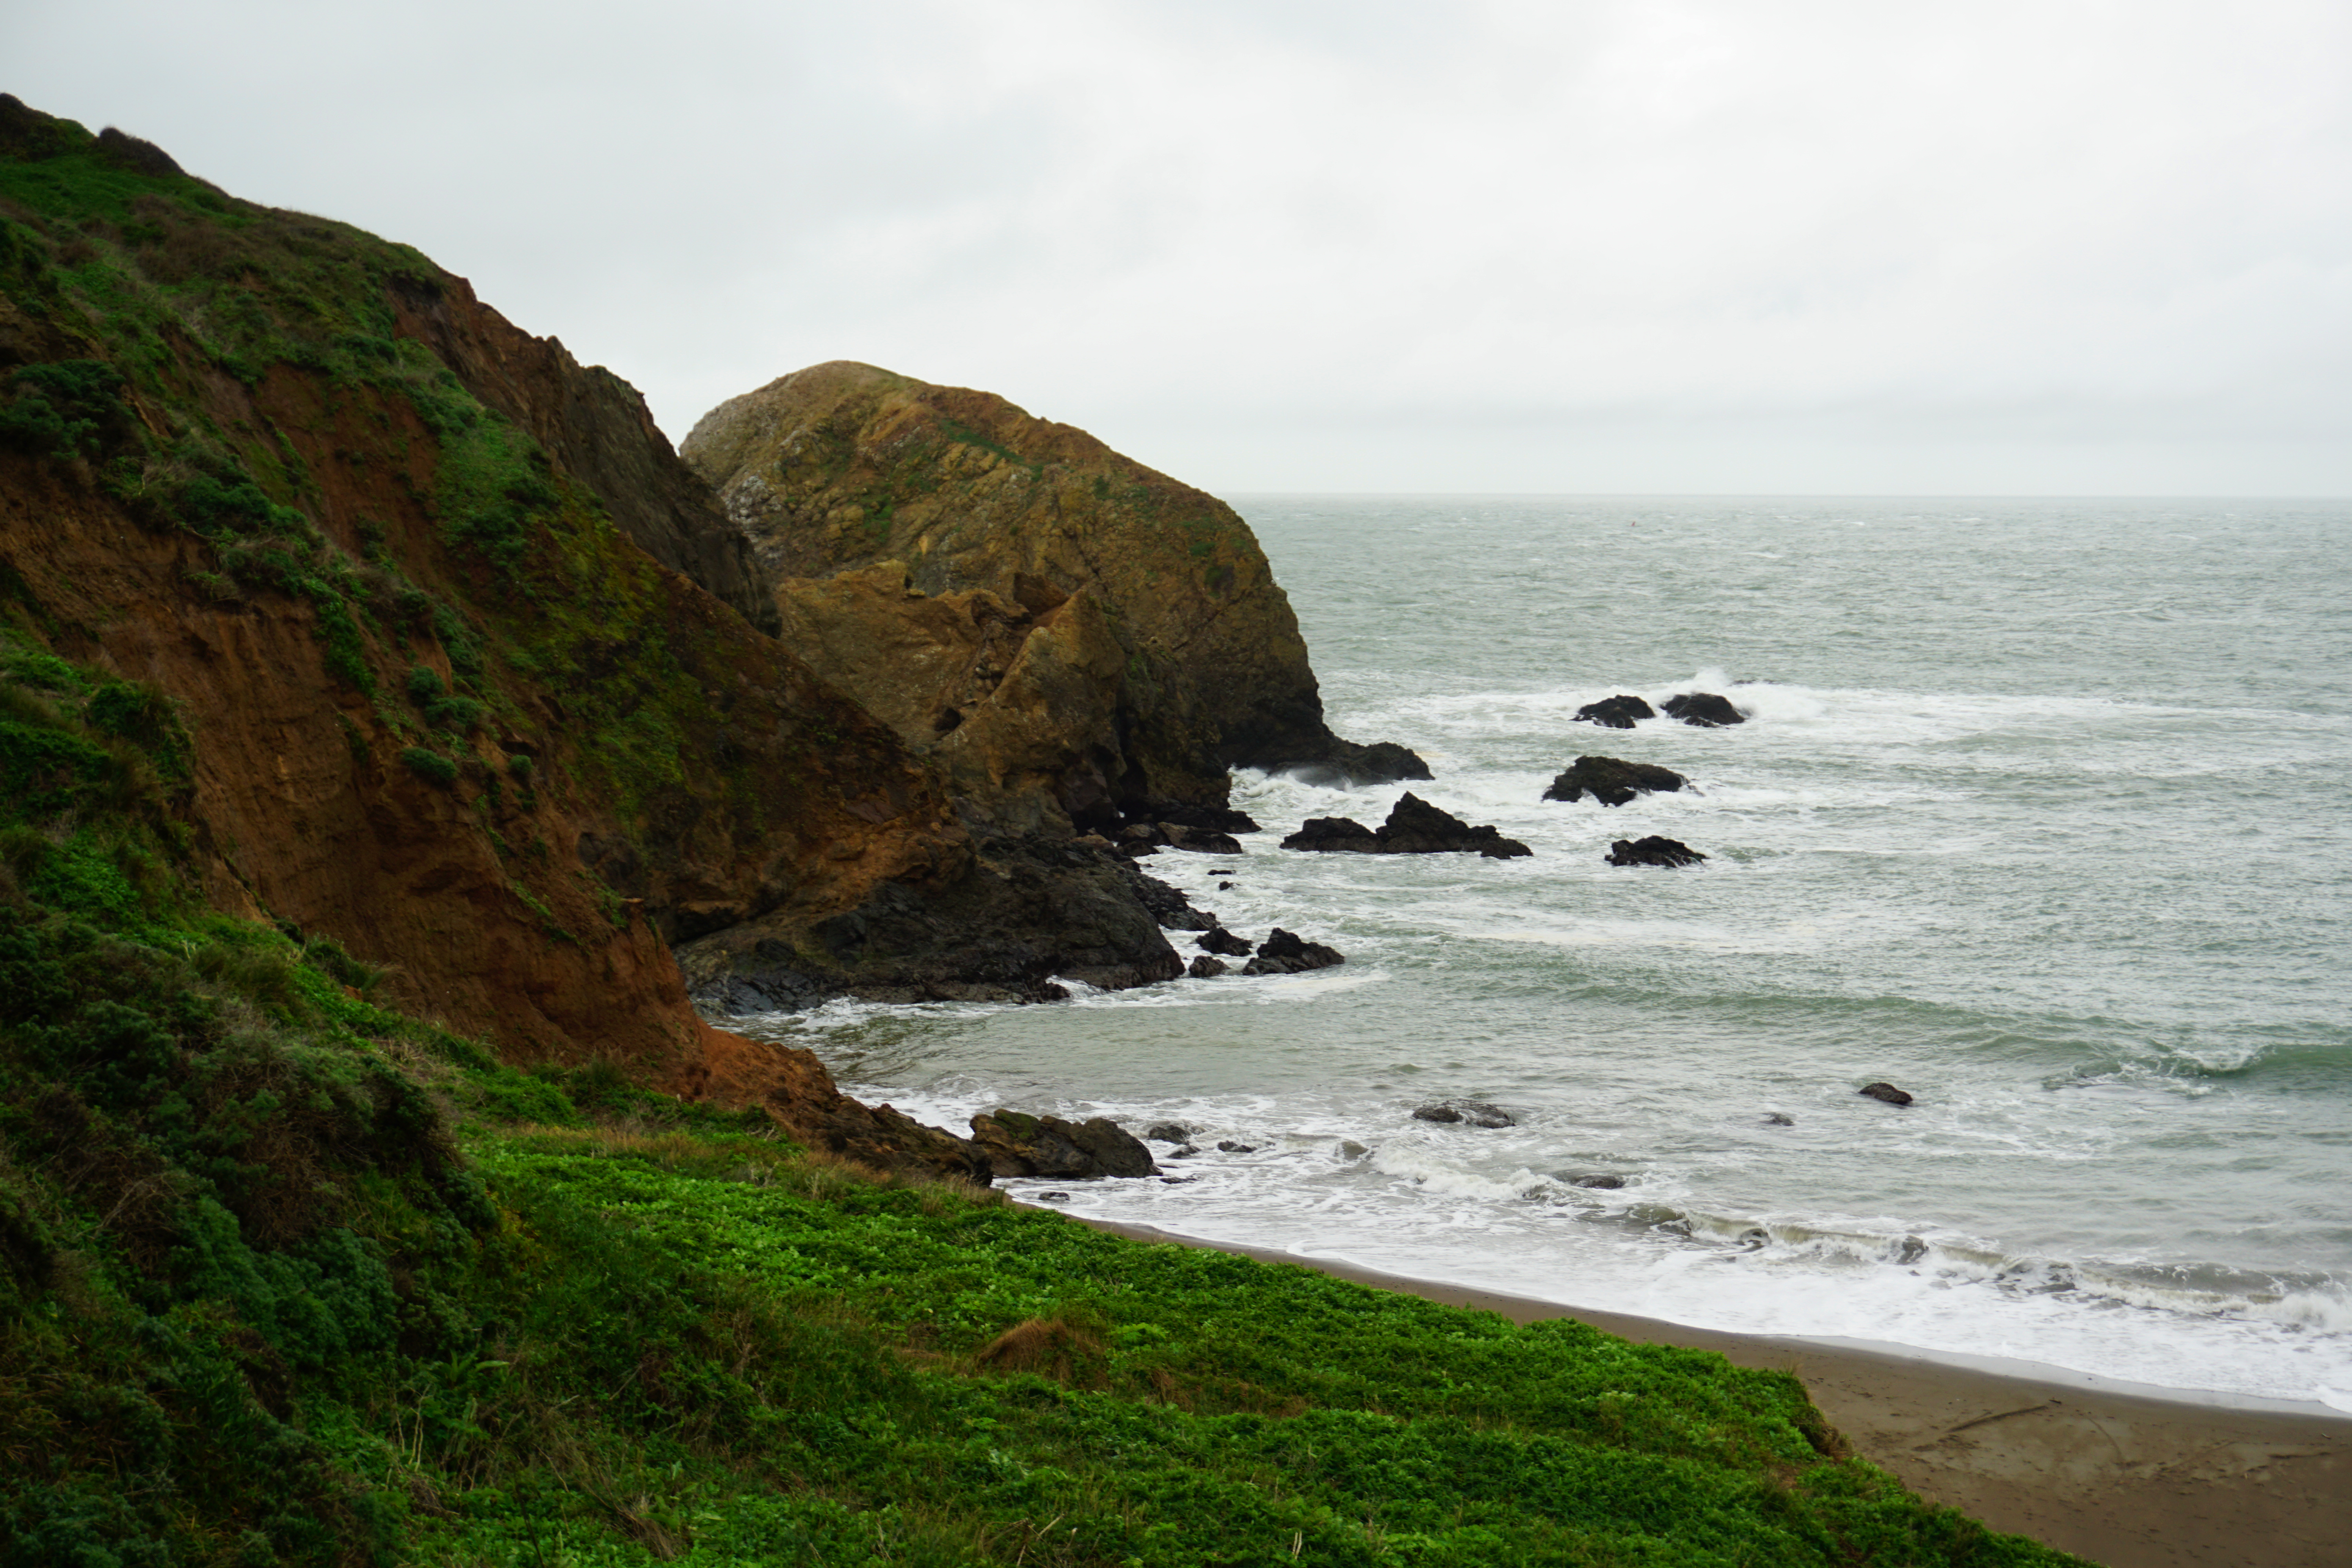 South Rodeo Beach in the Golden Gate National Recreation Area